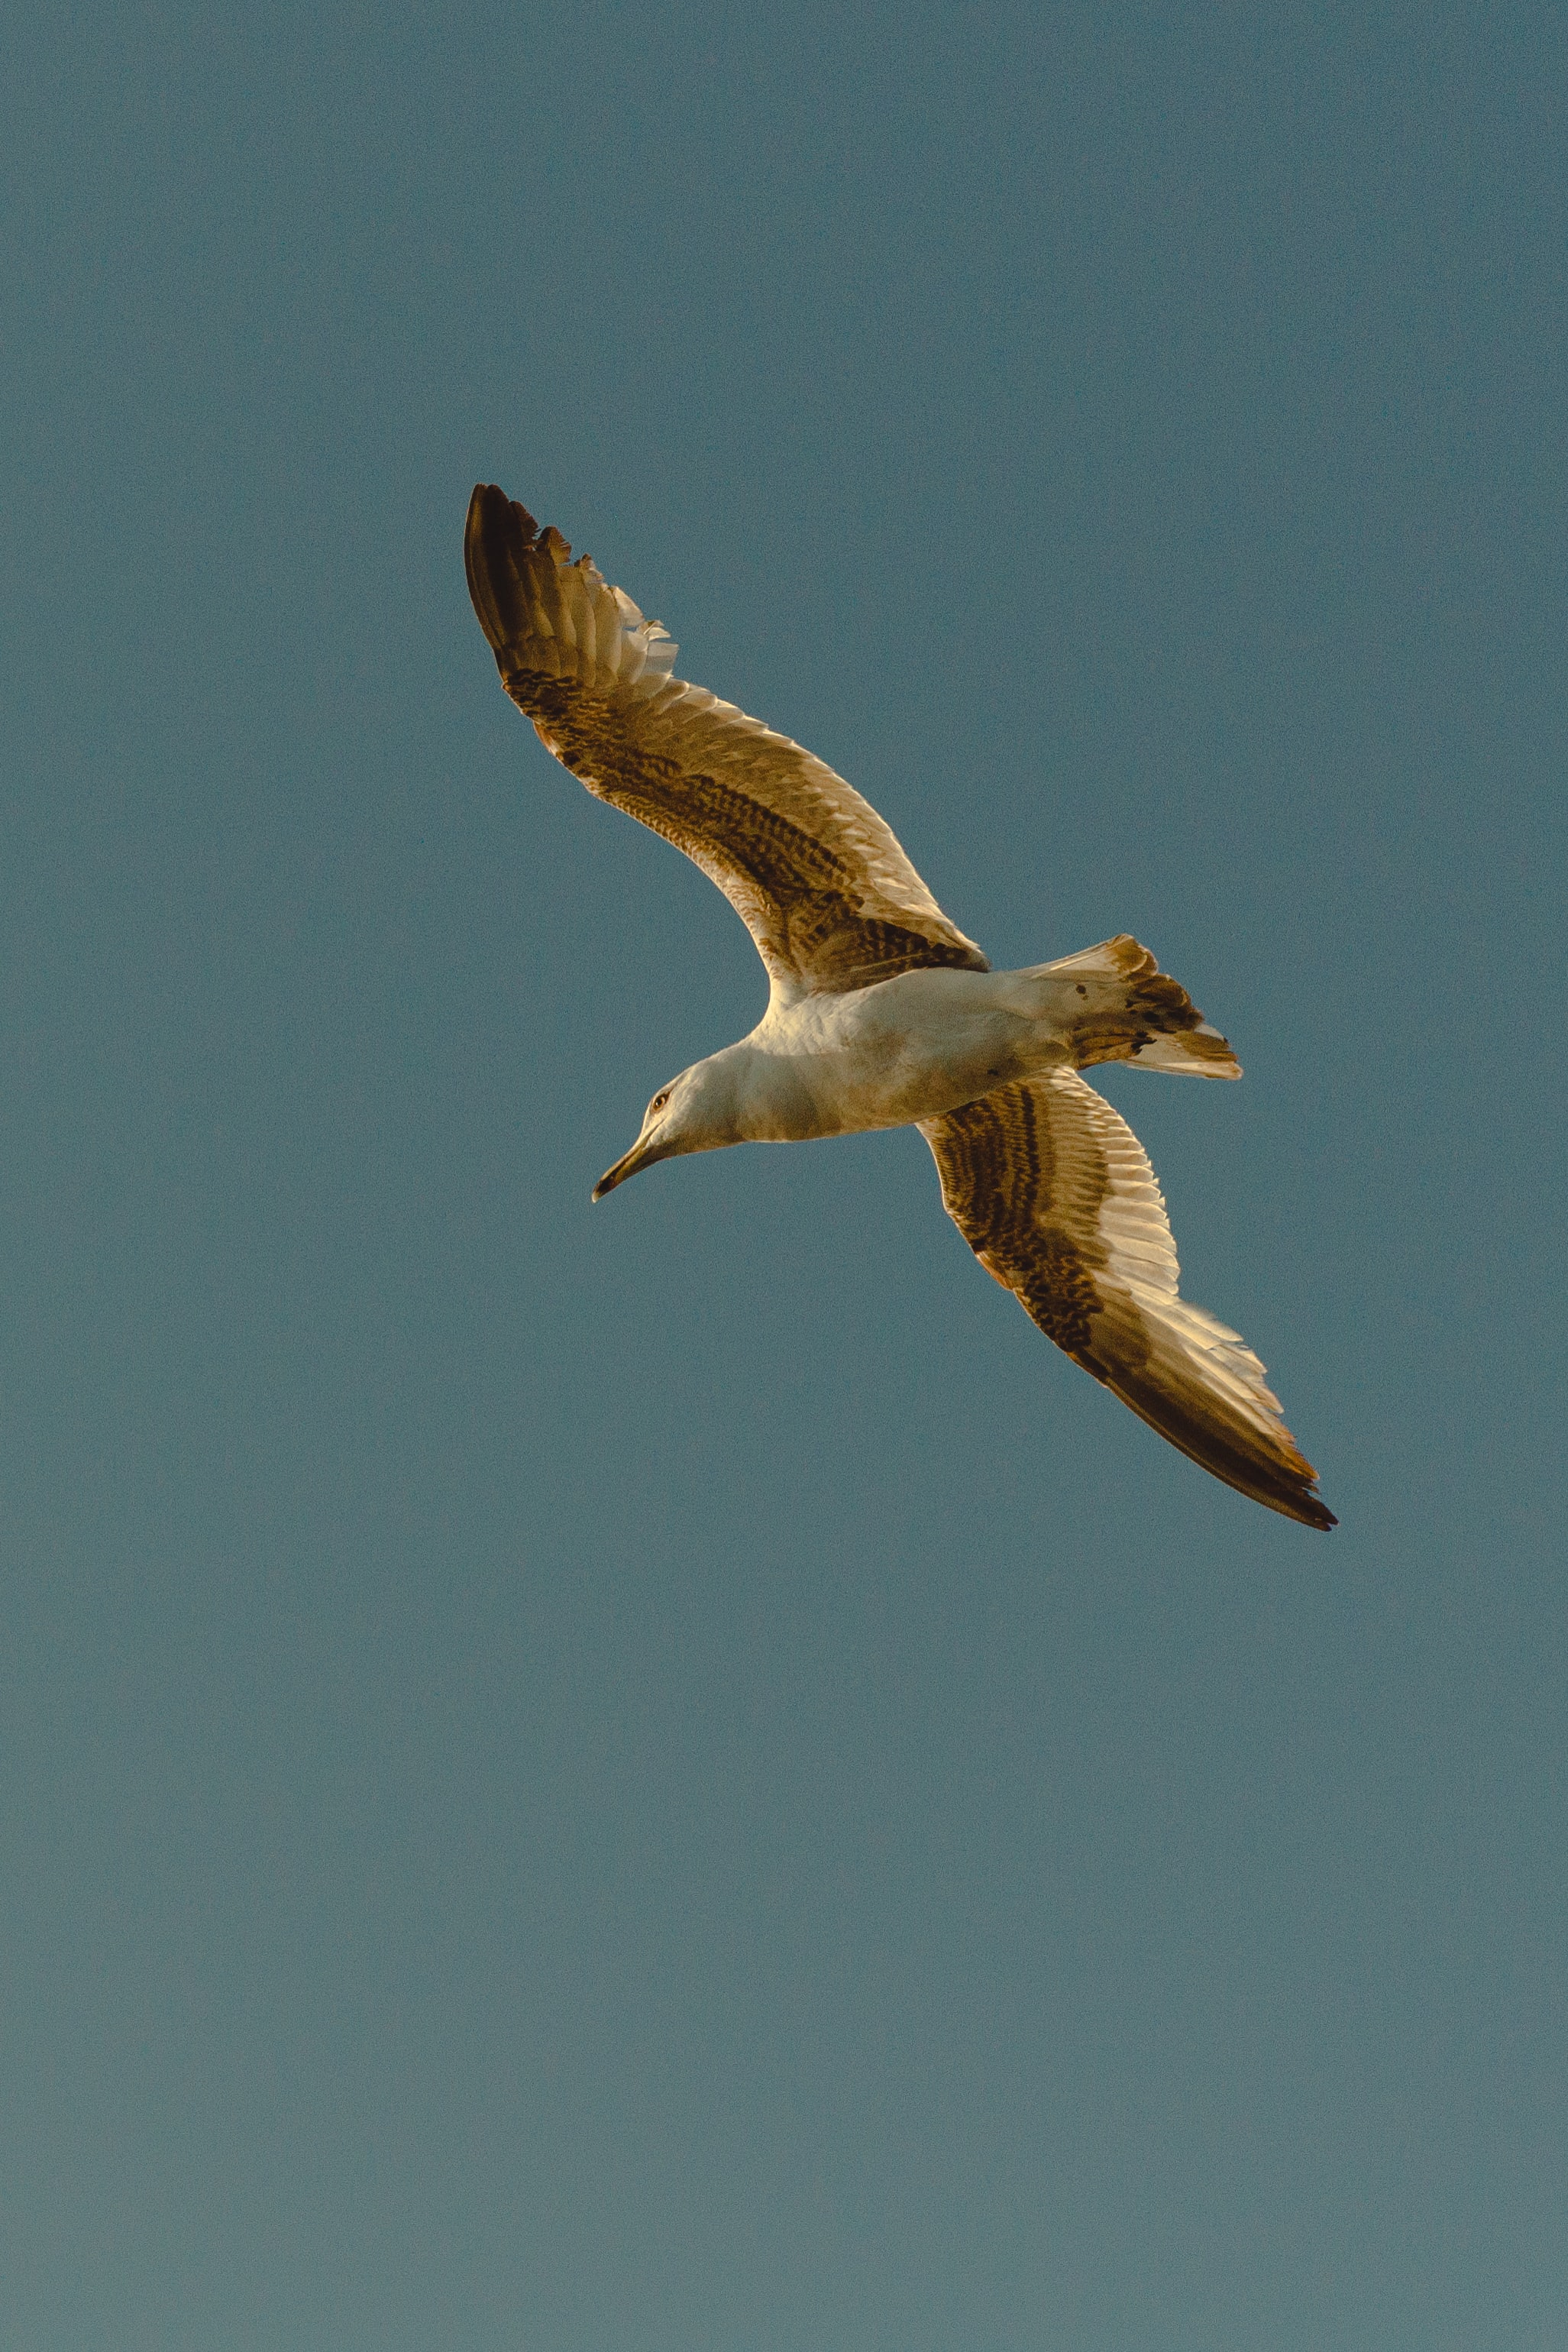 101101 download wallpaper Animals, Gull, Seagull, Bird, Flight, Wings, Sky screensavers and pictures for free